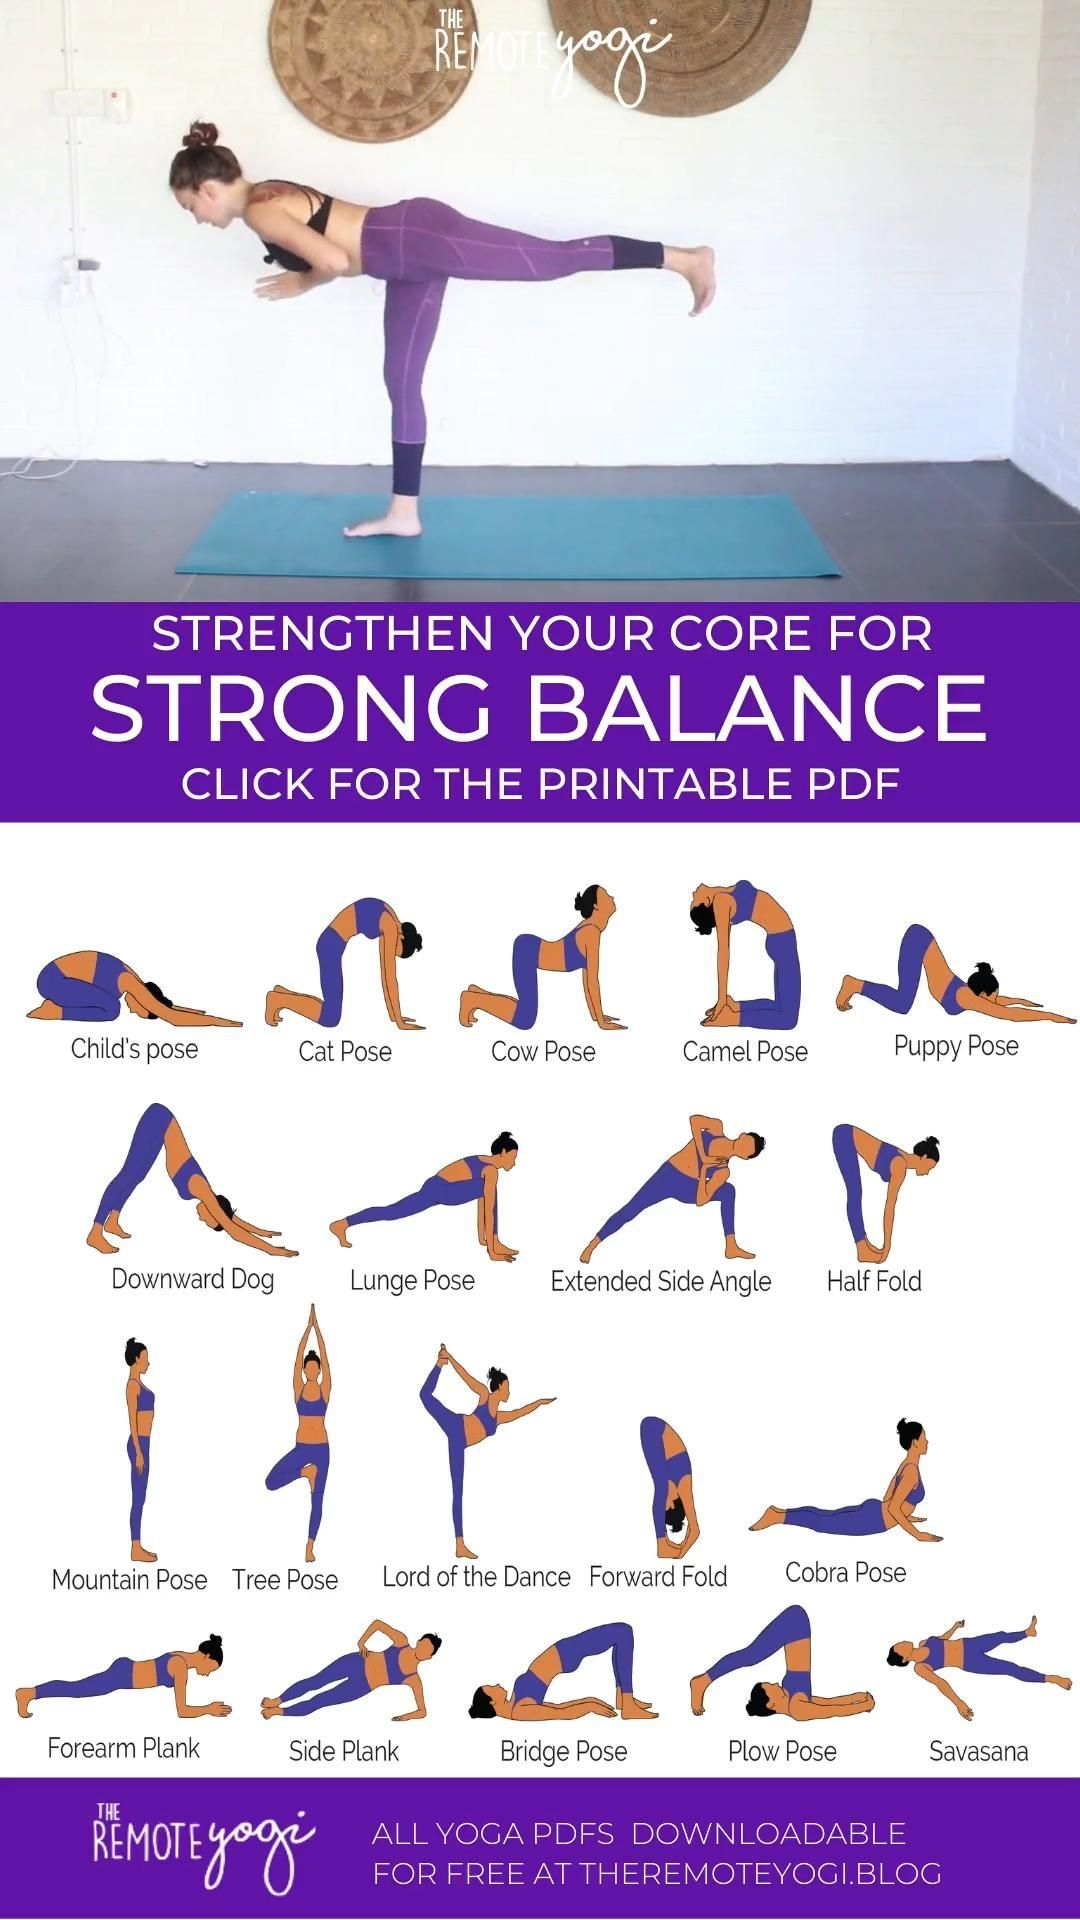 Strengthen Your Core With Balancing Yoga In 2020 Yoga For Balance Yoga Sequences Yoga Flow